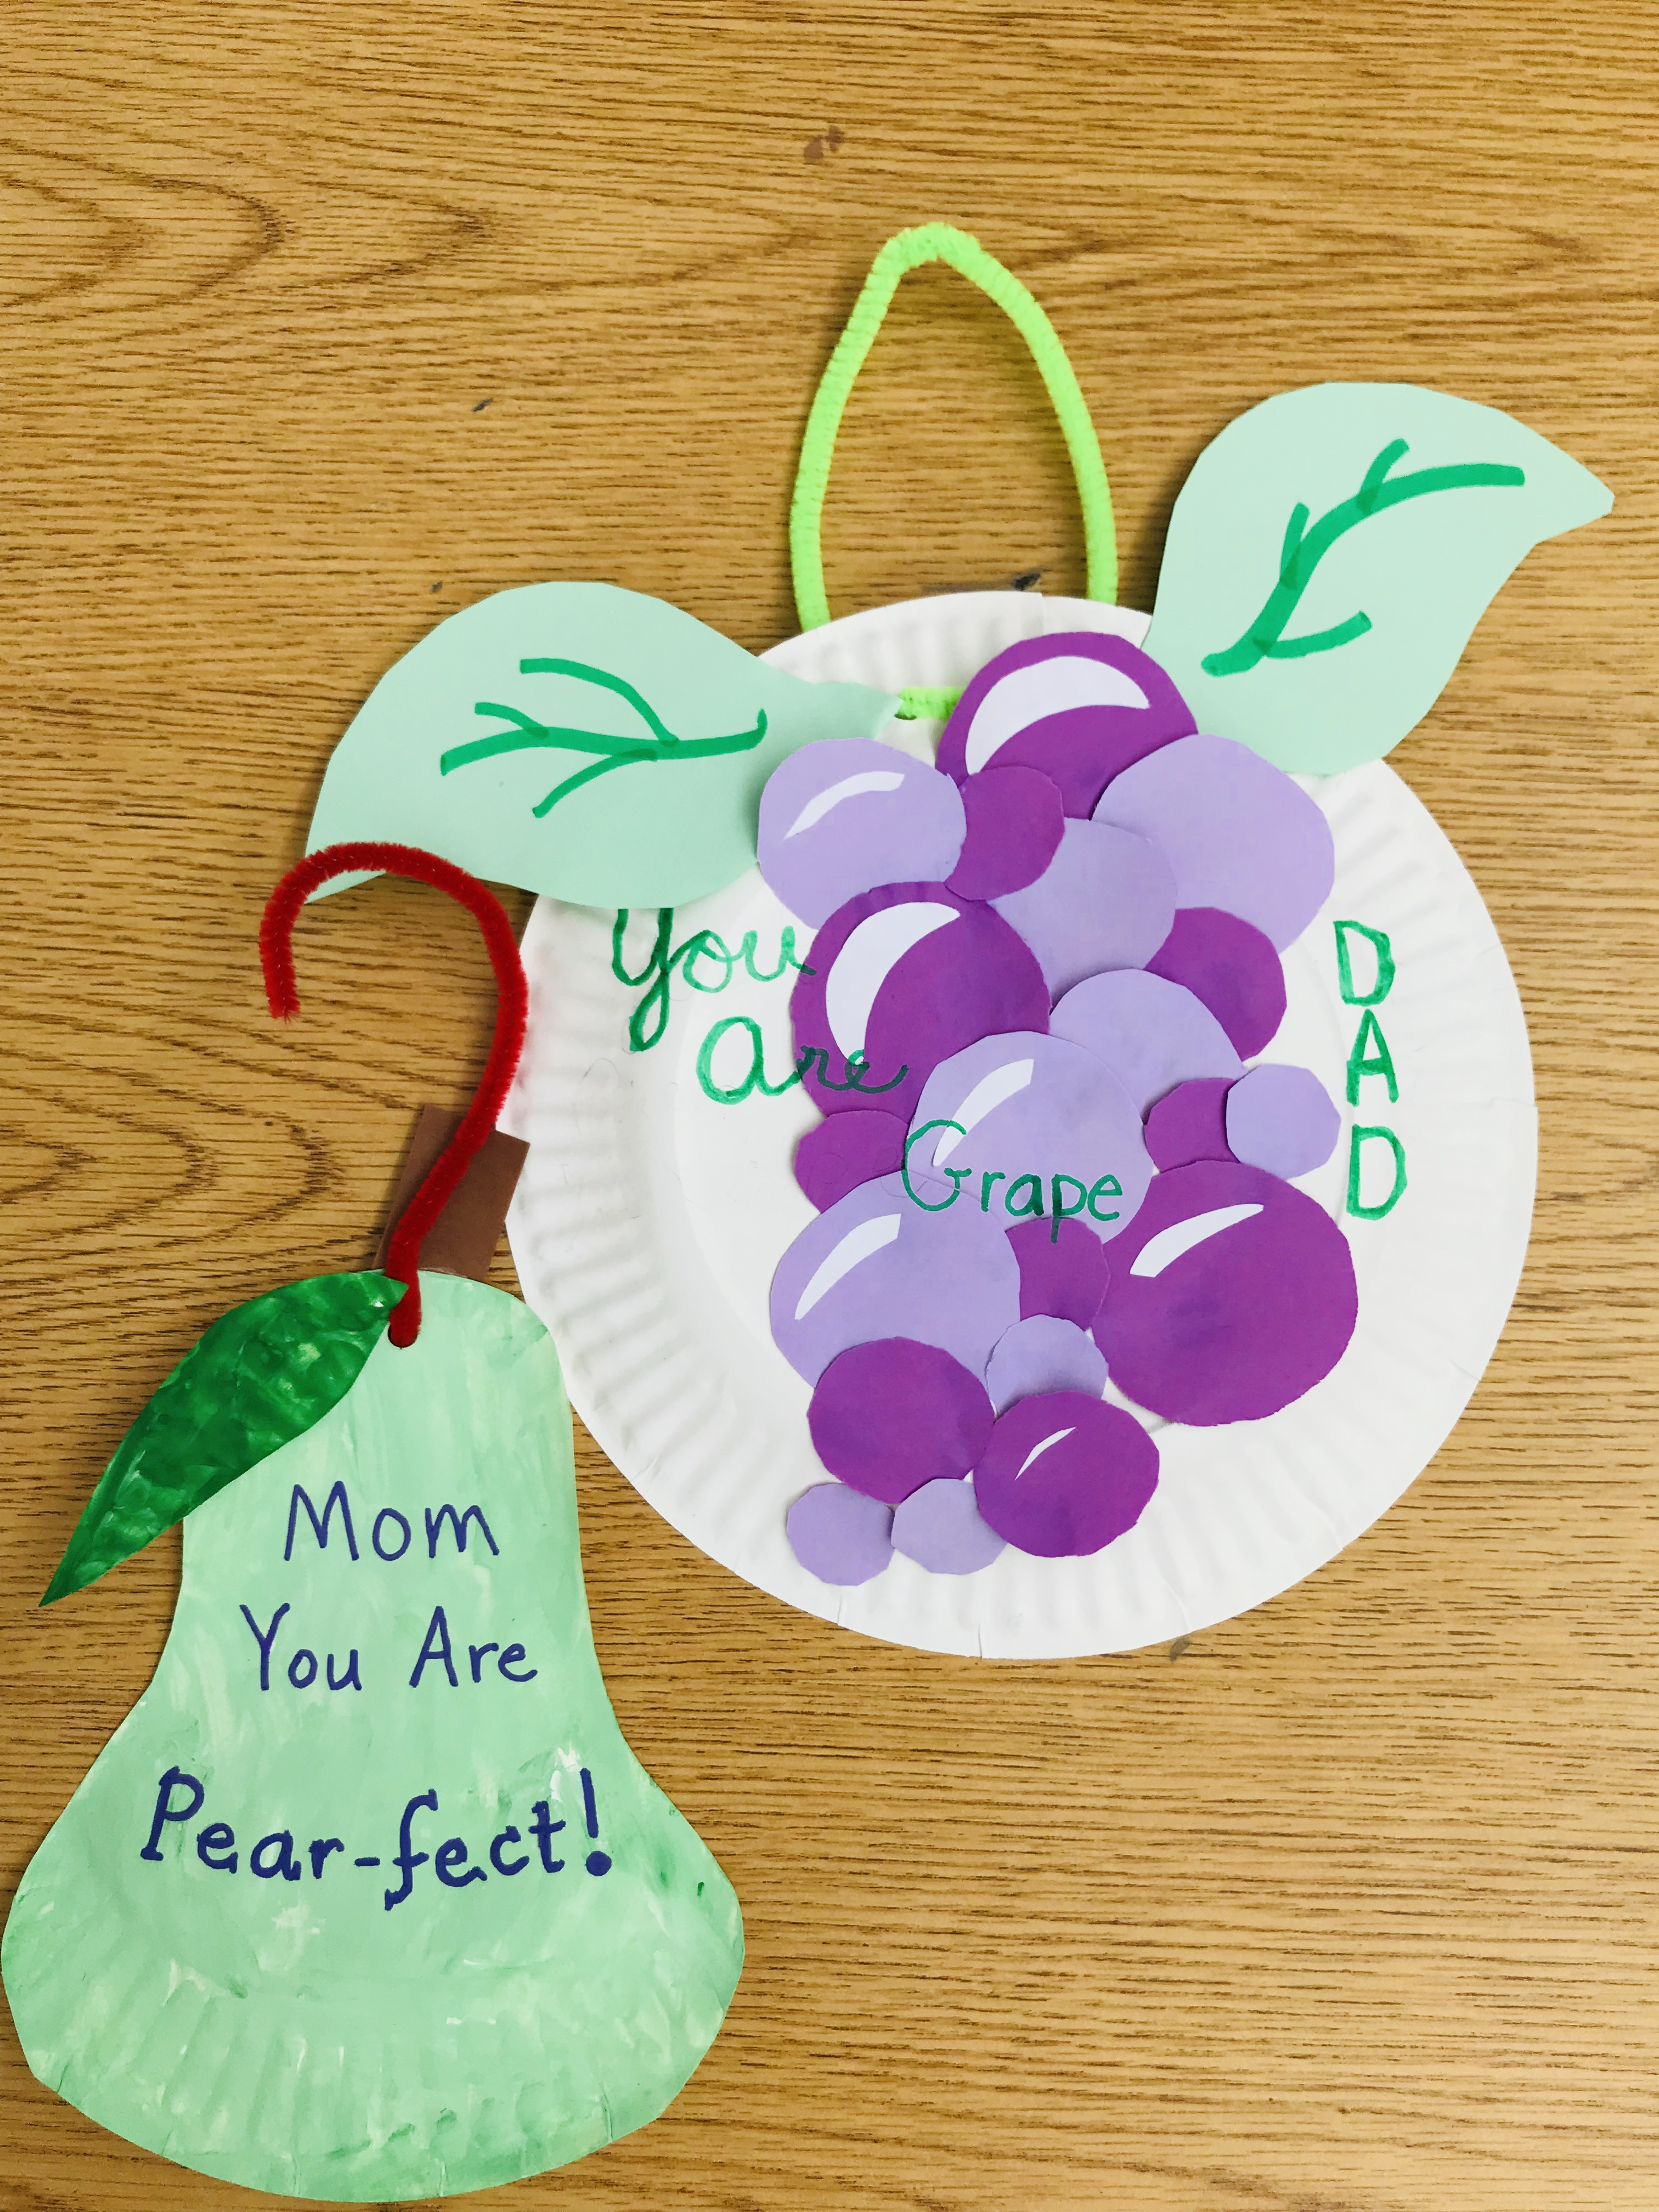 U Are Pear-fect and You Are Grape projects